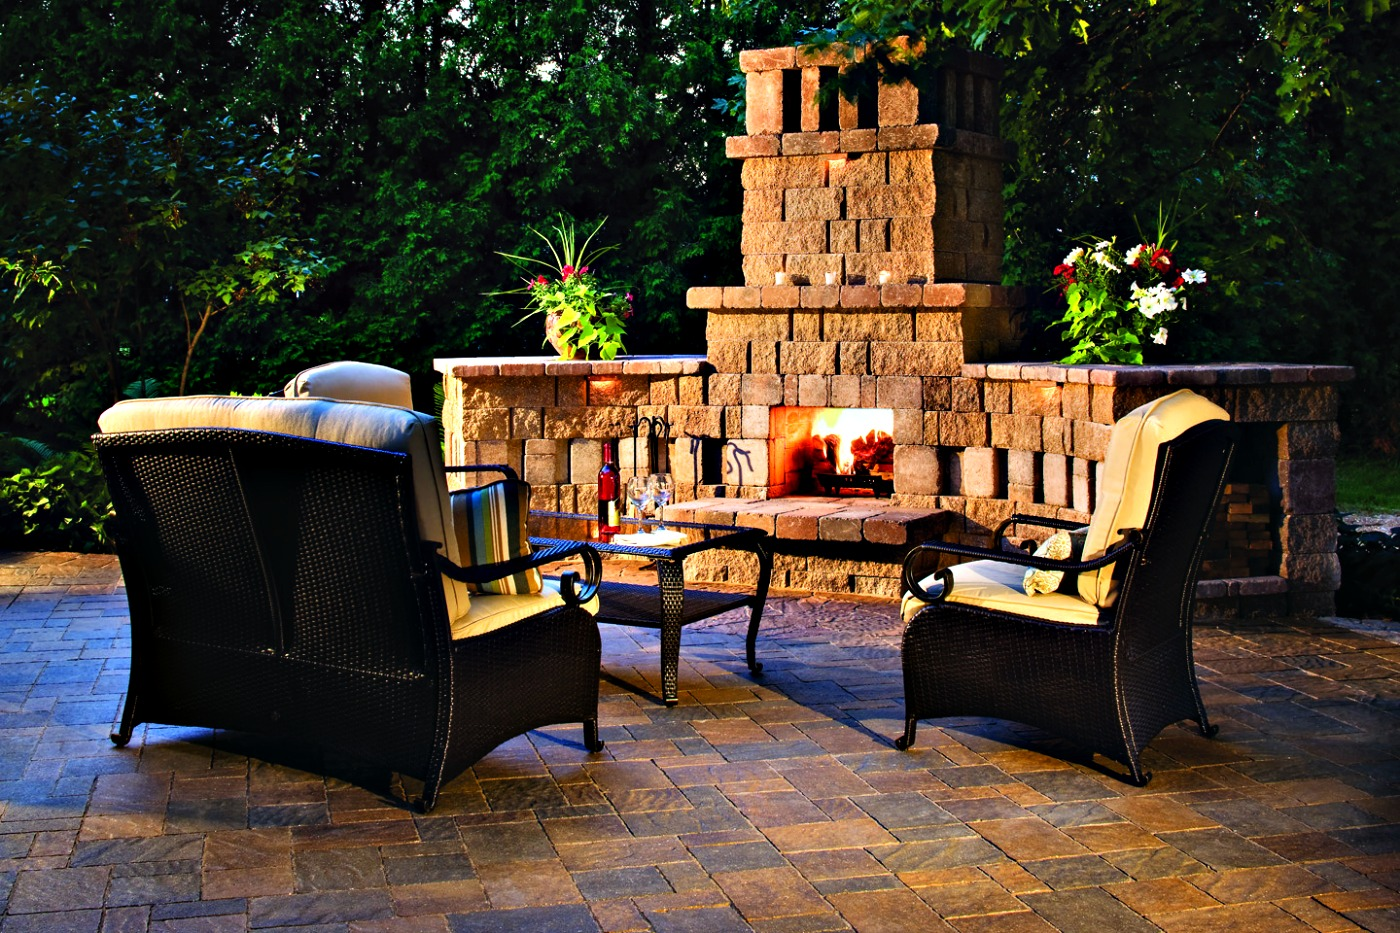 5 theres a size to fit your space you dont need a ton of space to fit a fire pit and in fact you dont even need a backyard